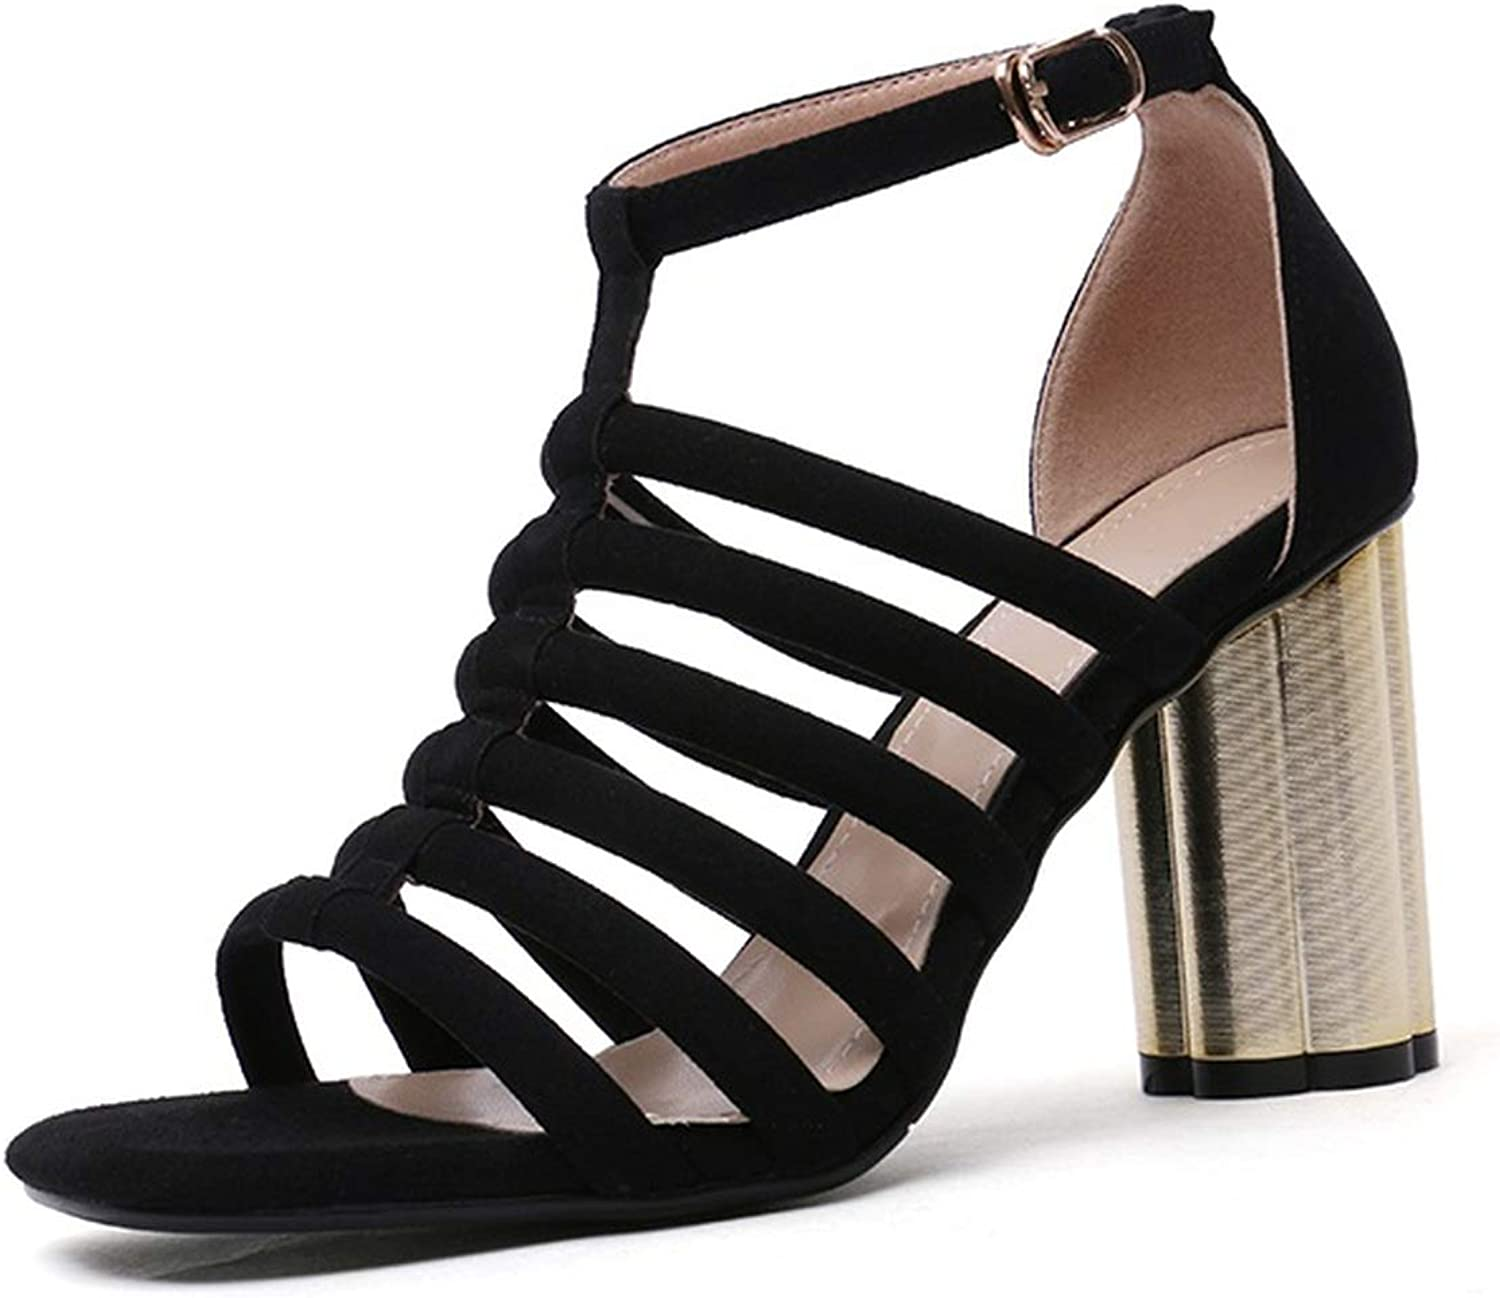 2019 New Suede Genuine Leather Gladiator Sandals Women shoes Cut Outs Thick high Heels Sandals Ladies shoes Female